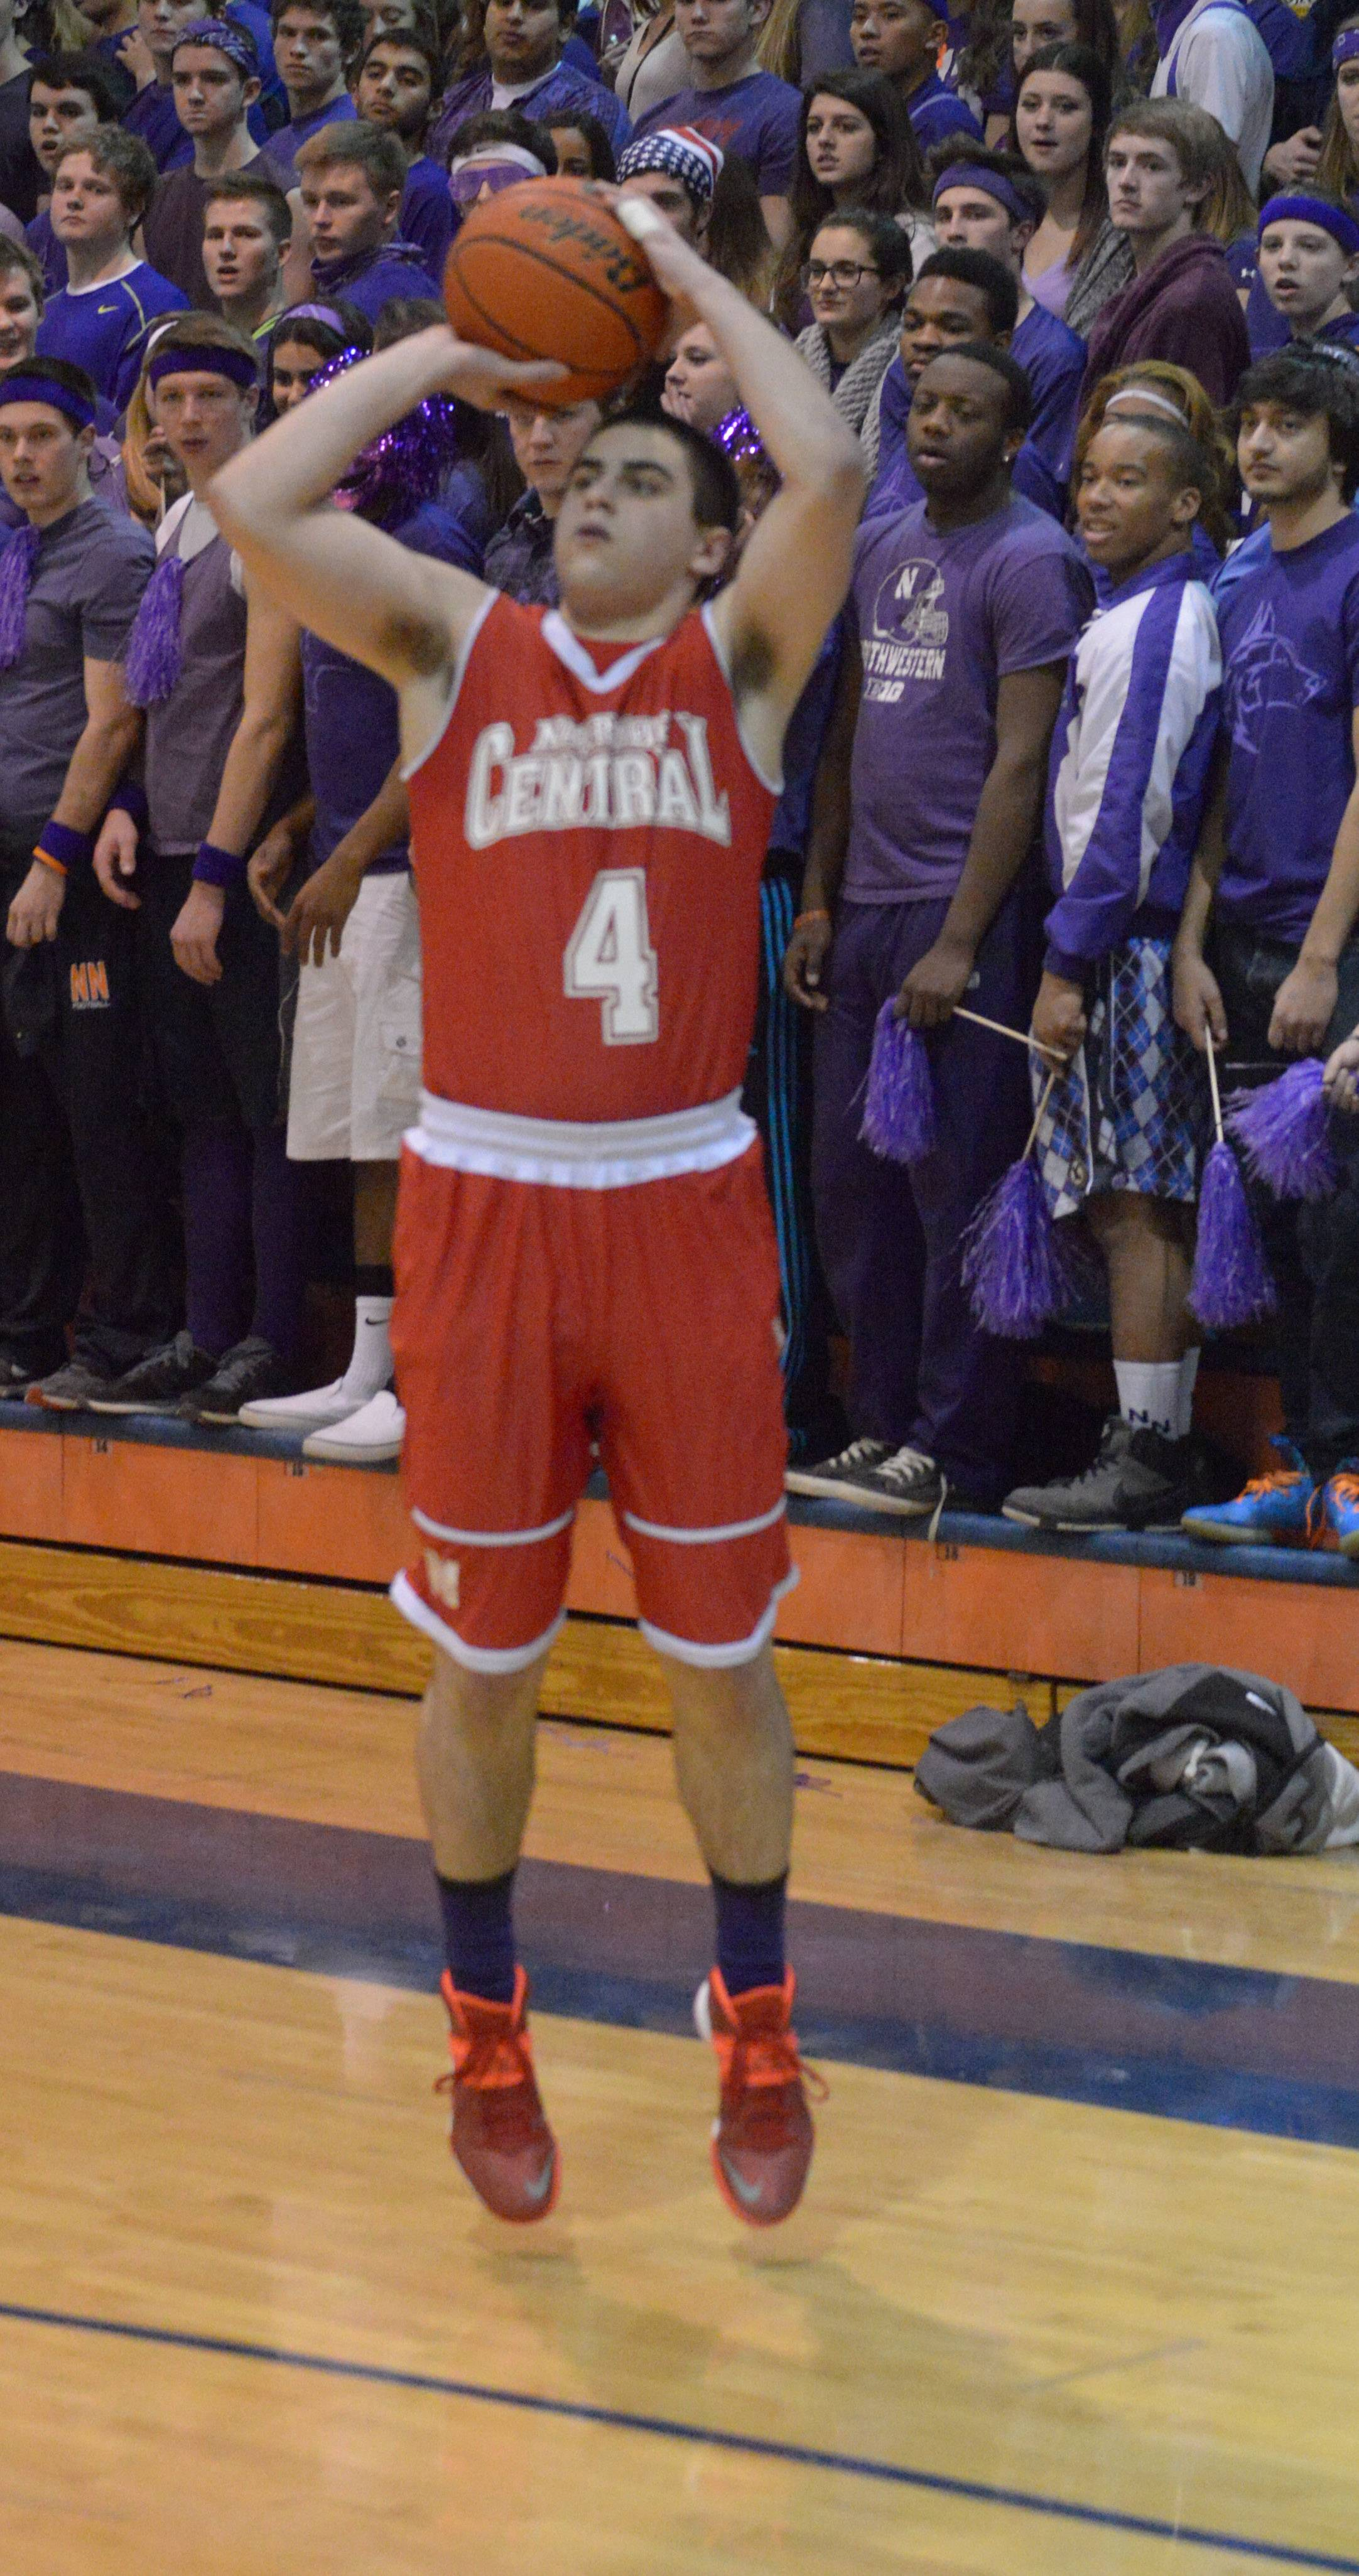 Naperville Central and guard Ryan Antony have won their last nine games.